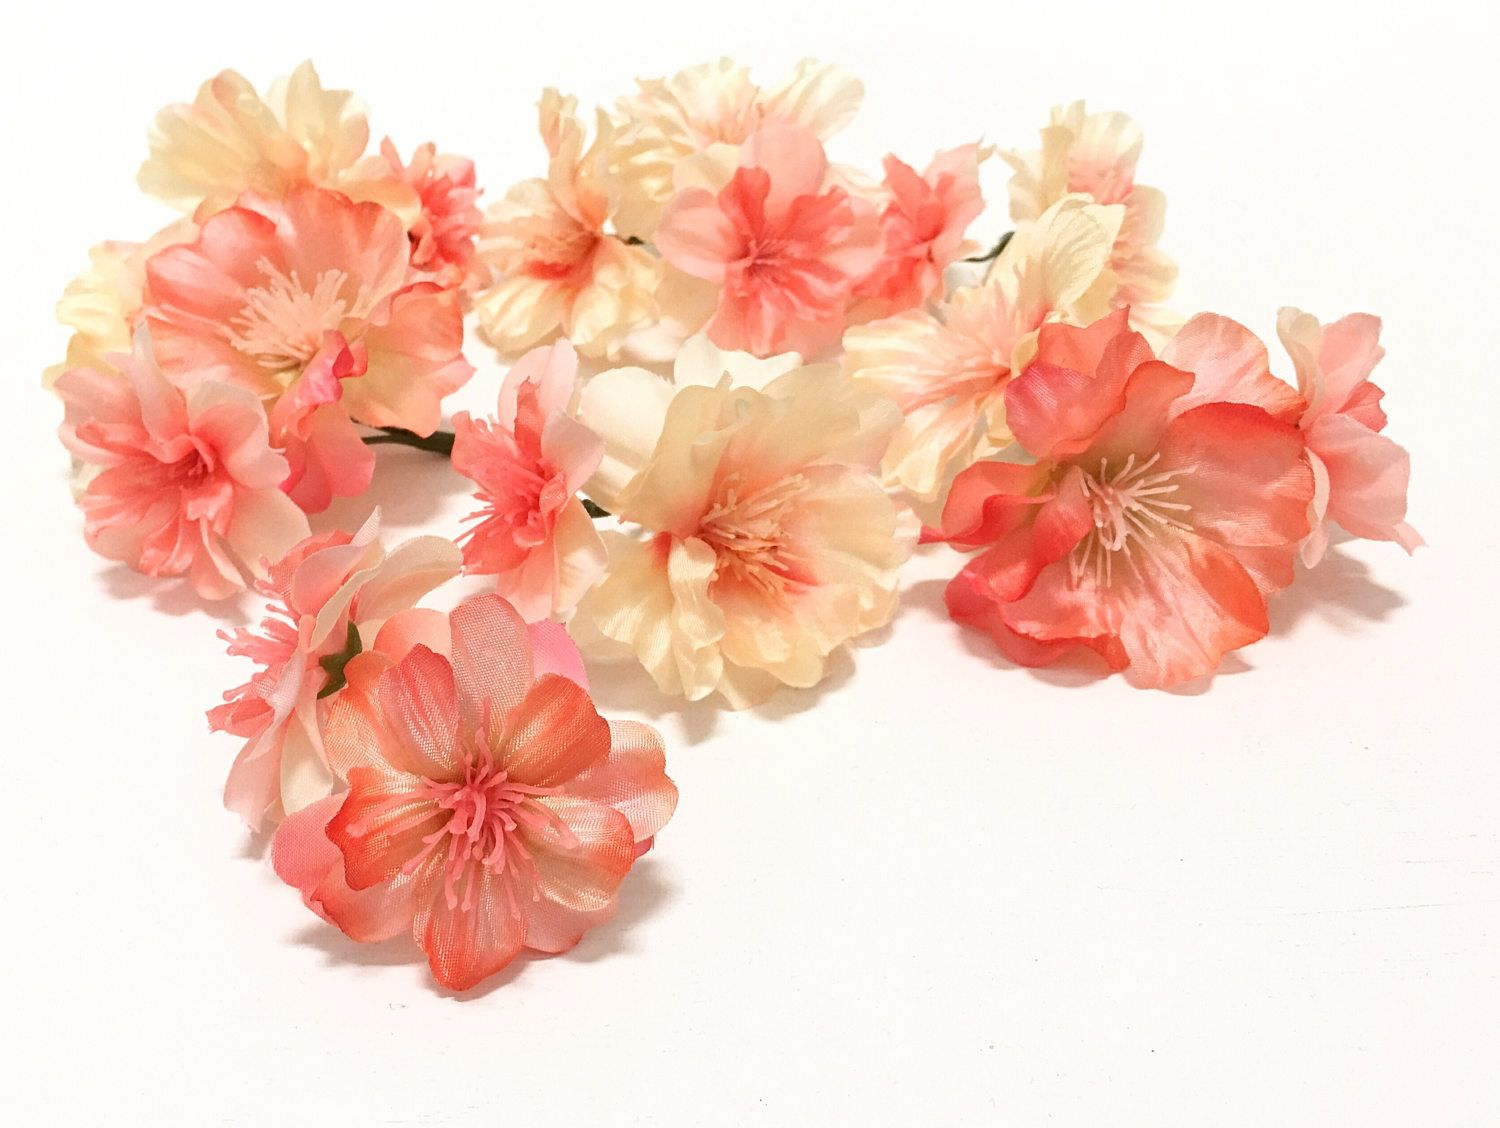 17 flower blossoms in coral peach artificial flowers peach 17 flower blossoms in coral peach artificial flowers peach blossoms silk flowers mightylinksfo Gallery